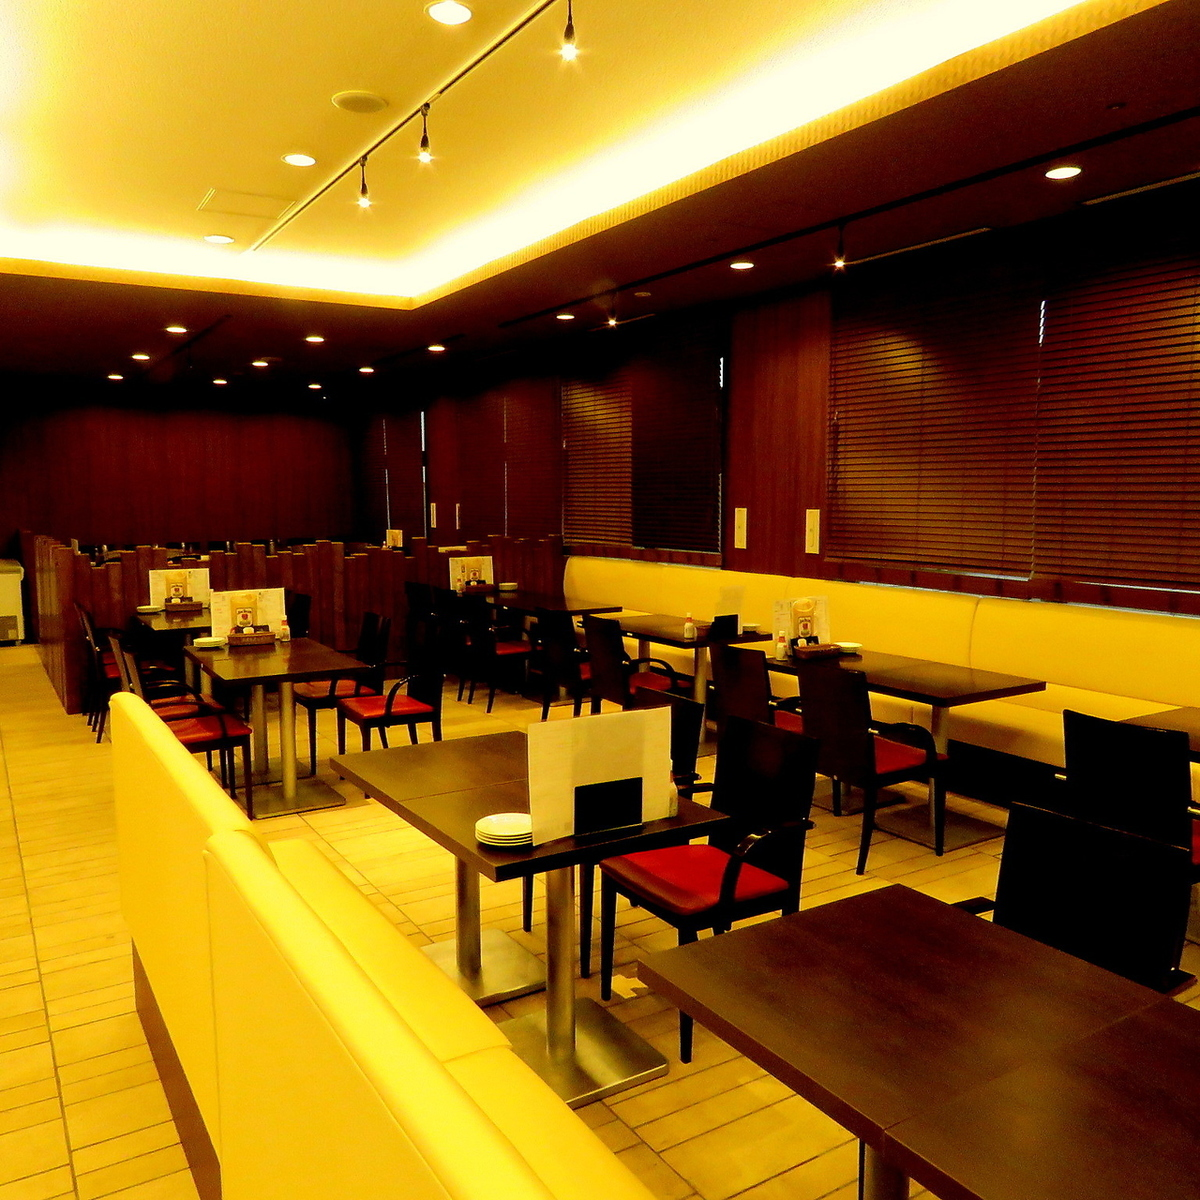 A large space is perfect for large banquets, charters ♪ The internet reservation is also possible as much as possible, so we can accommodate various people so we can reserve it.